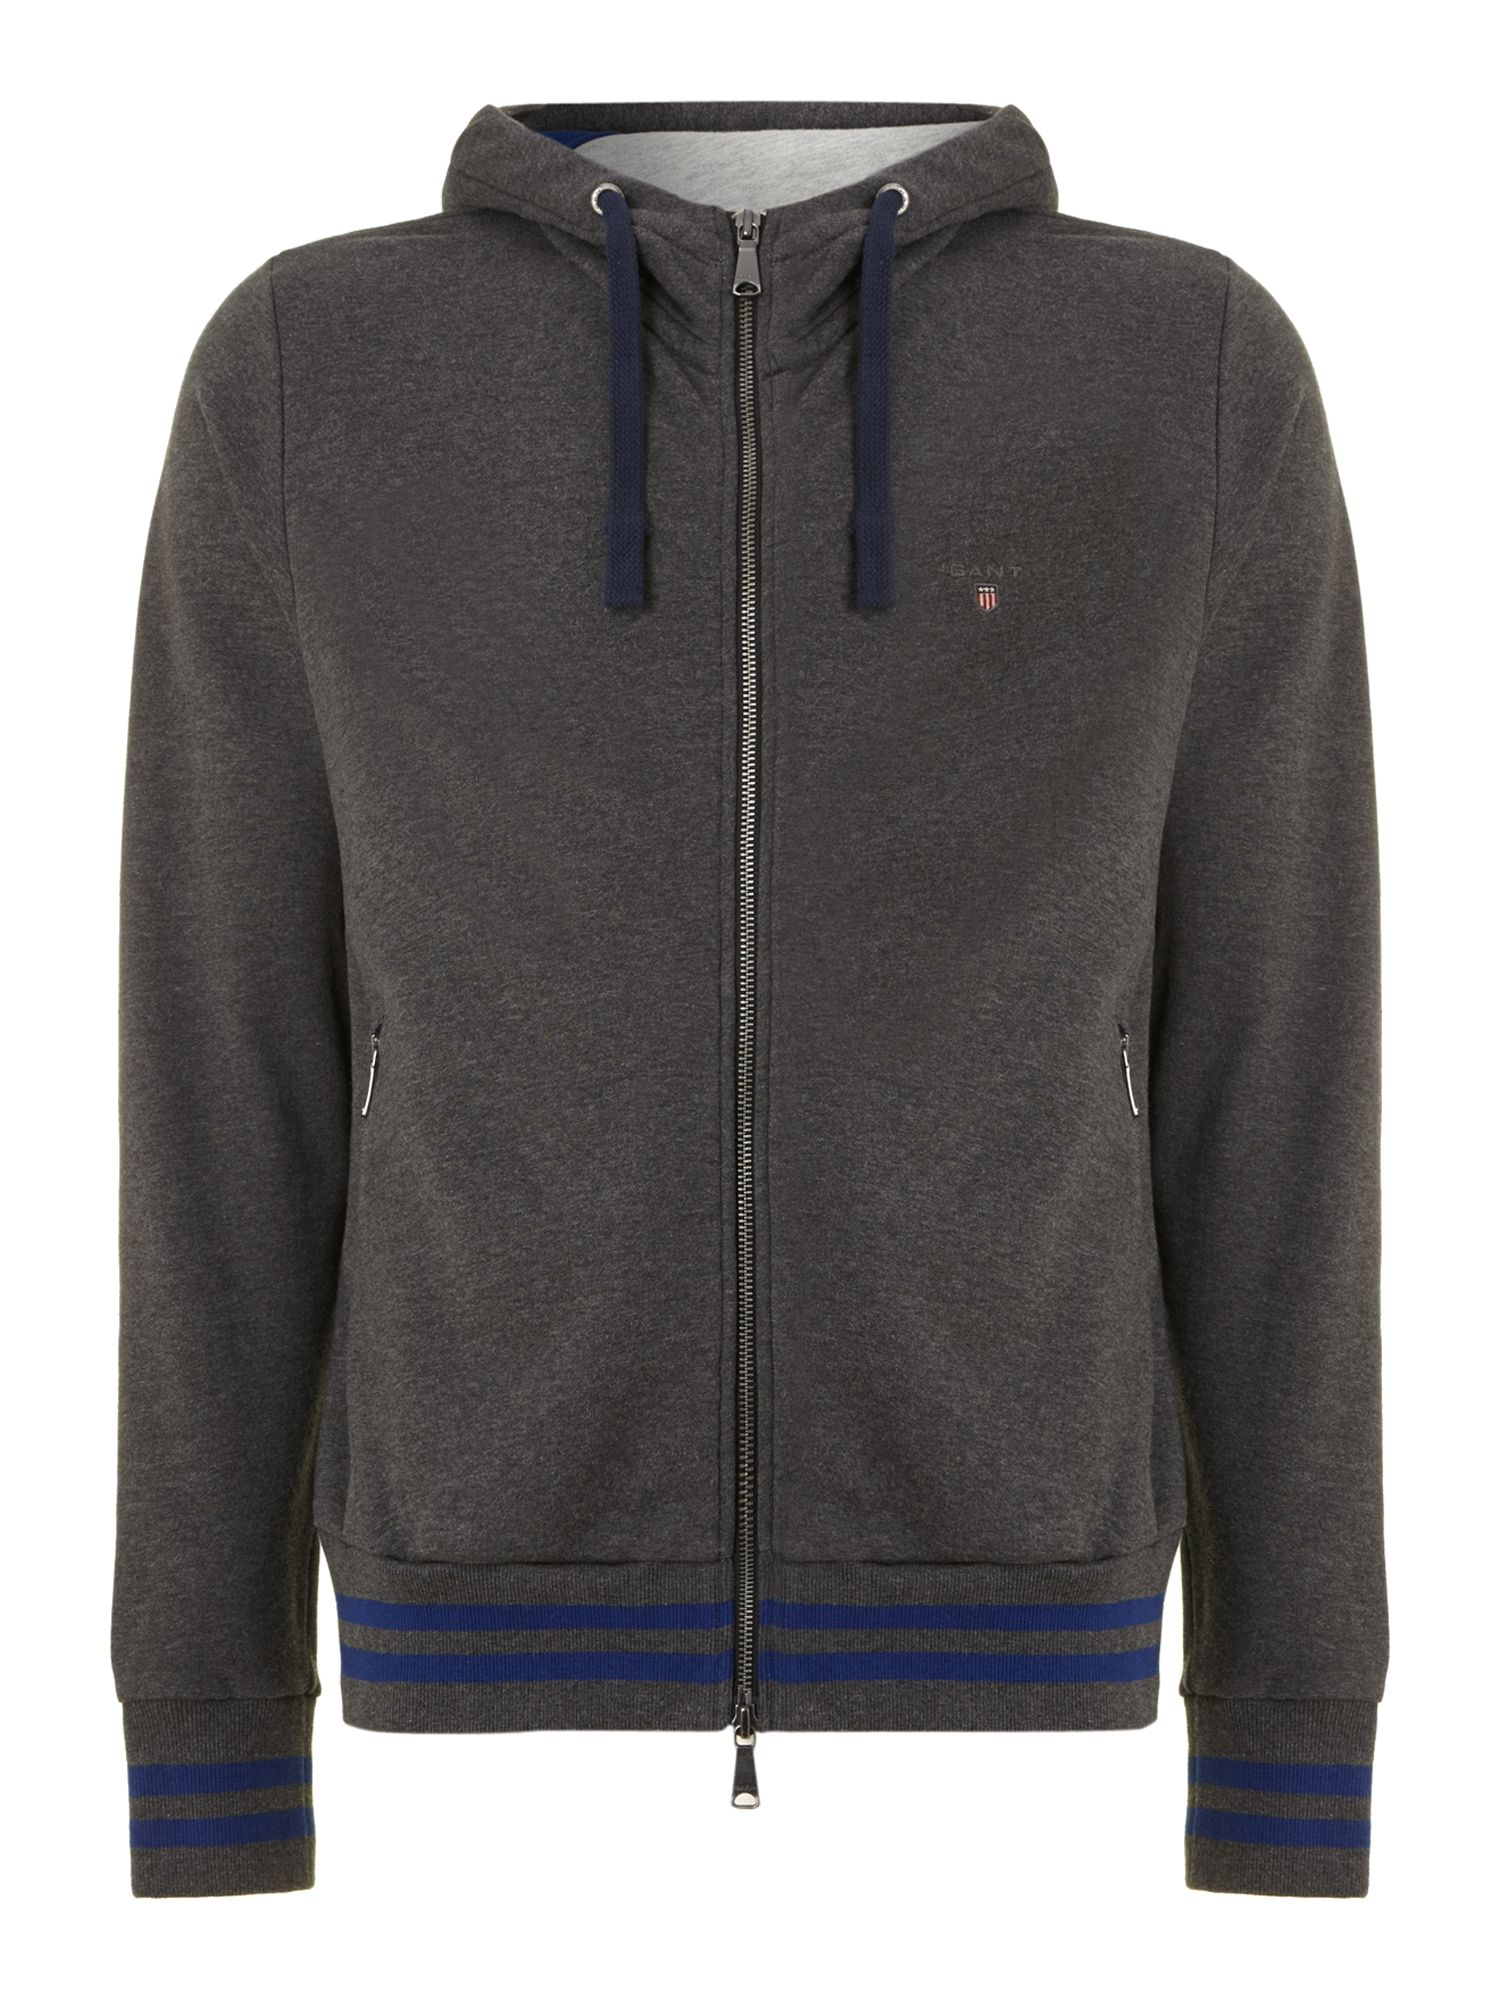 NY tipped rib full zip hoody